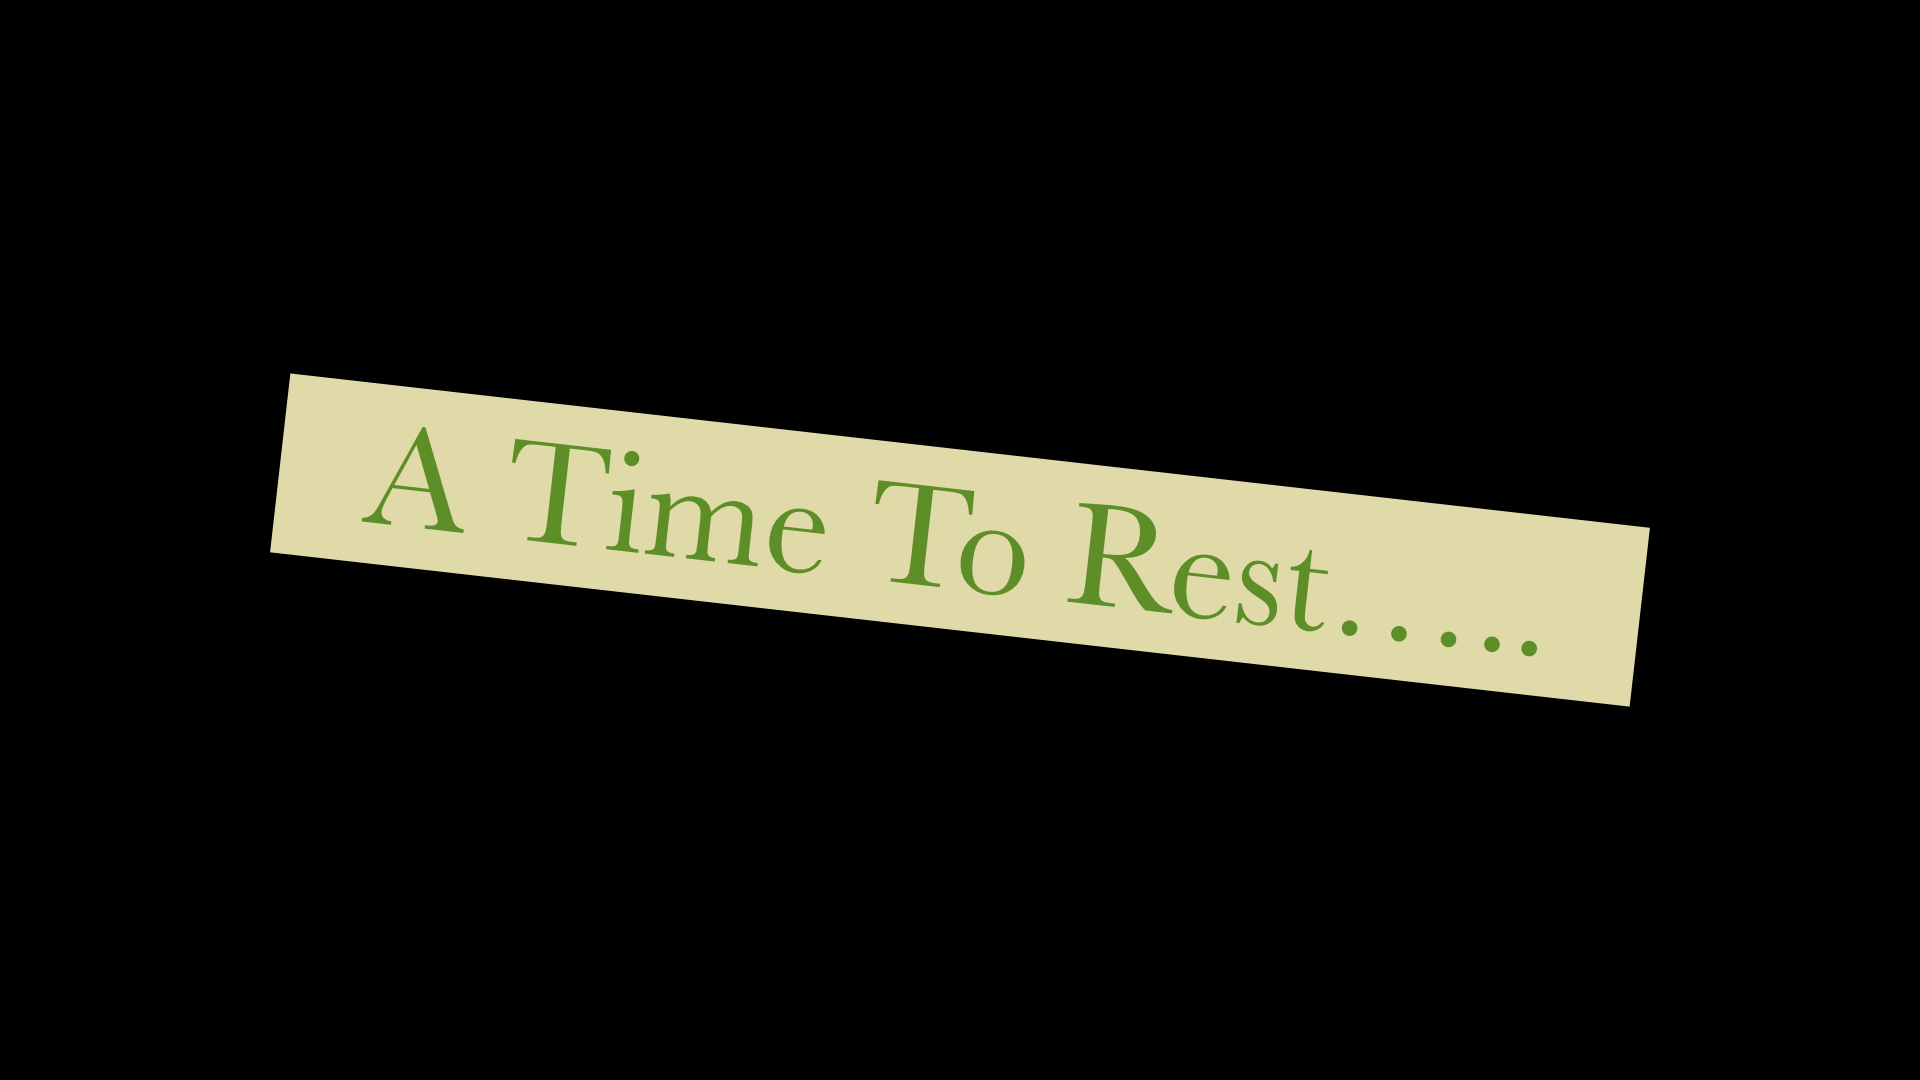 I Time To Rest 872019 50741 PM